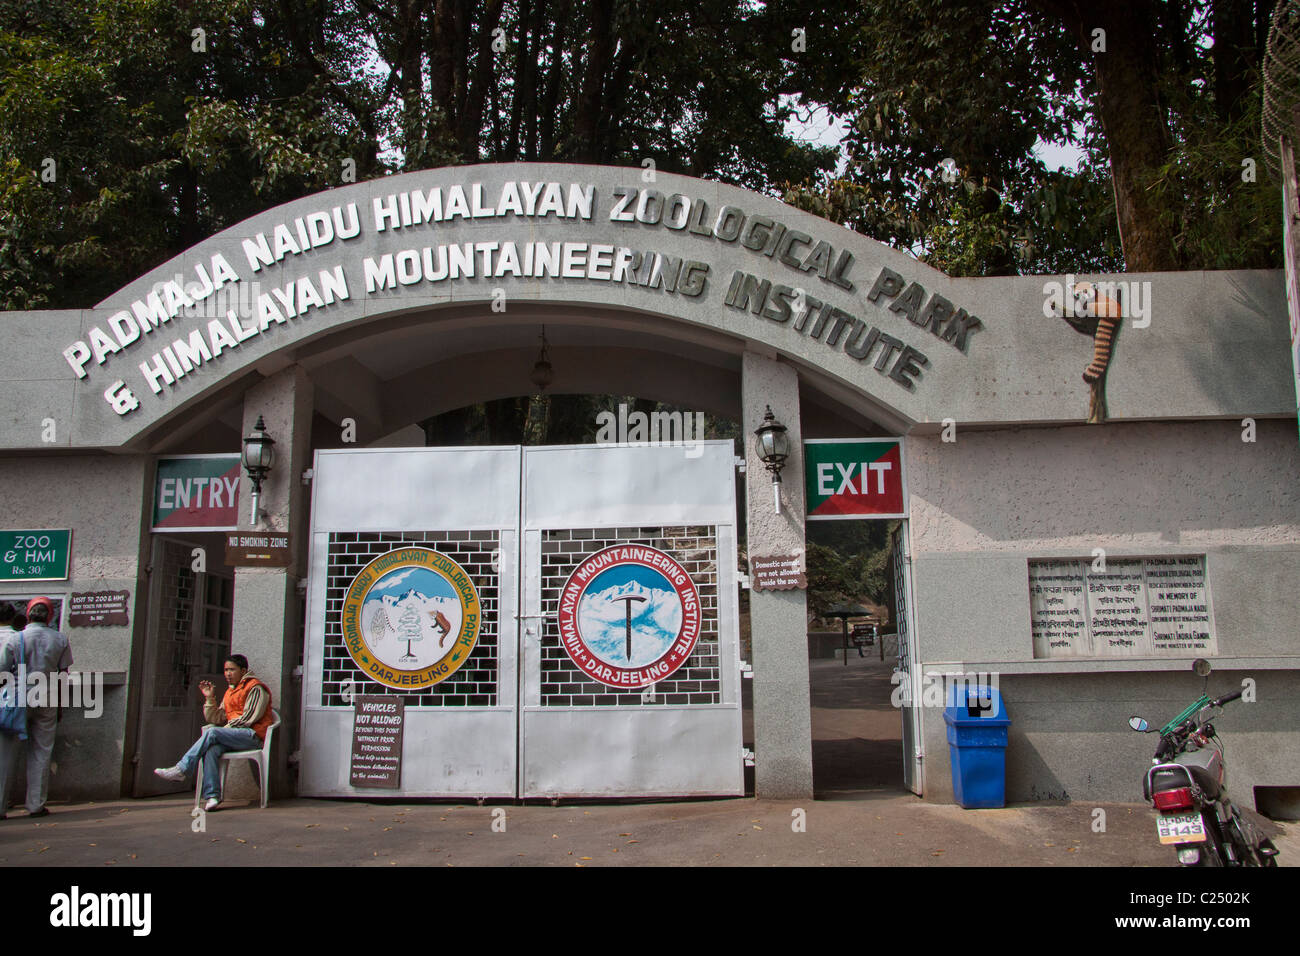 Padmaja Naidu Himalayan Zoological Park & Himalayan Mountaineering Institute in Darjeeling, West Bengal, India. - Stock Image